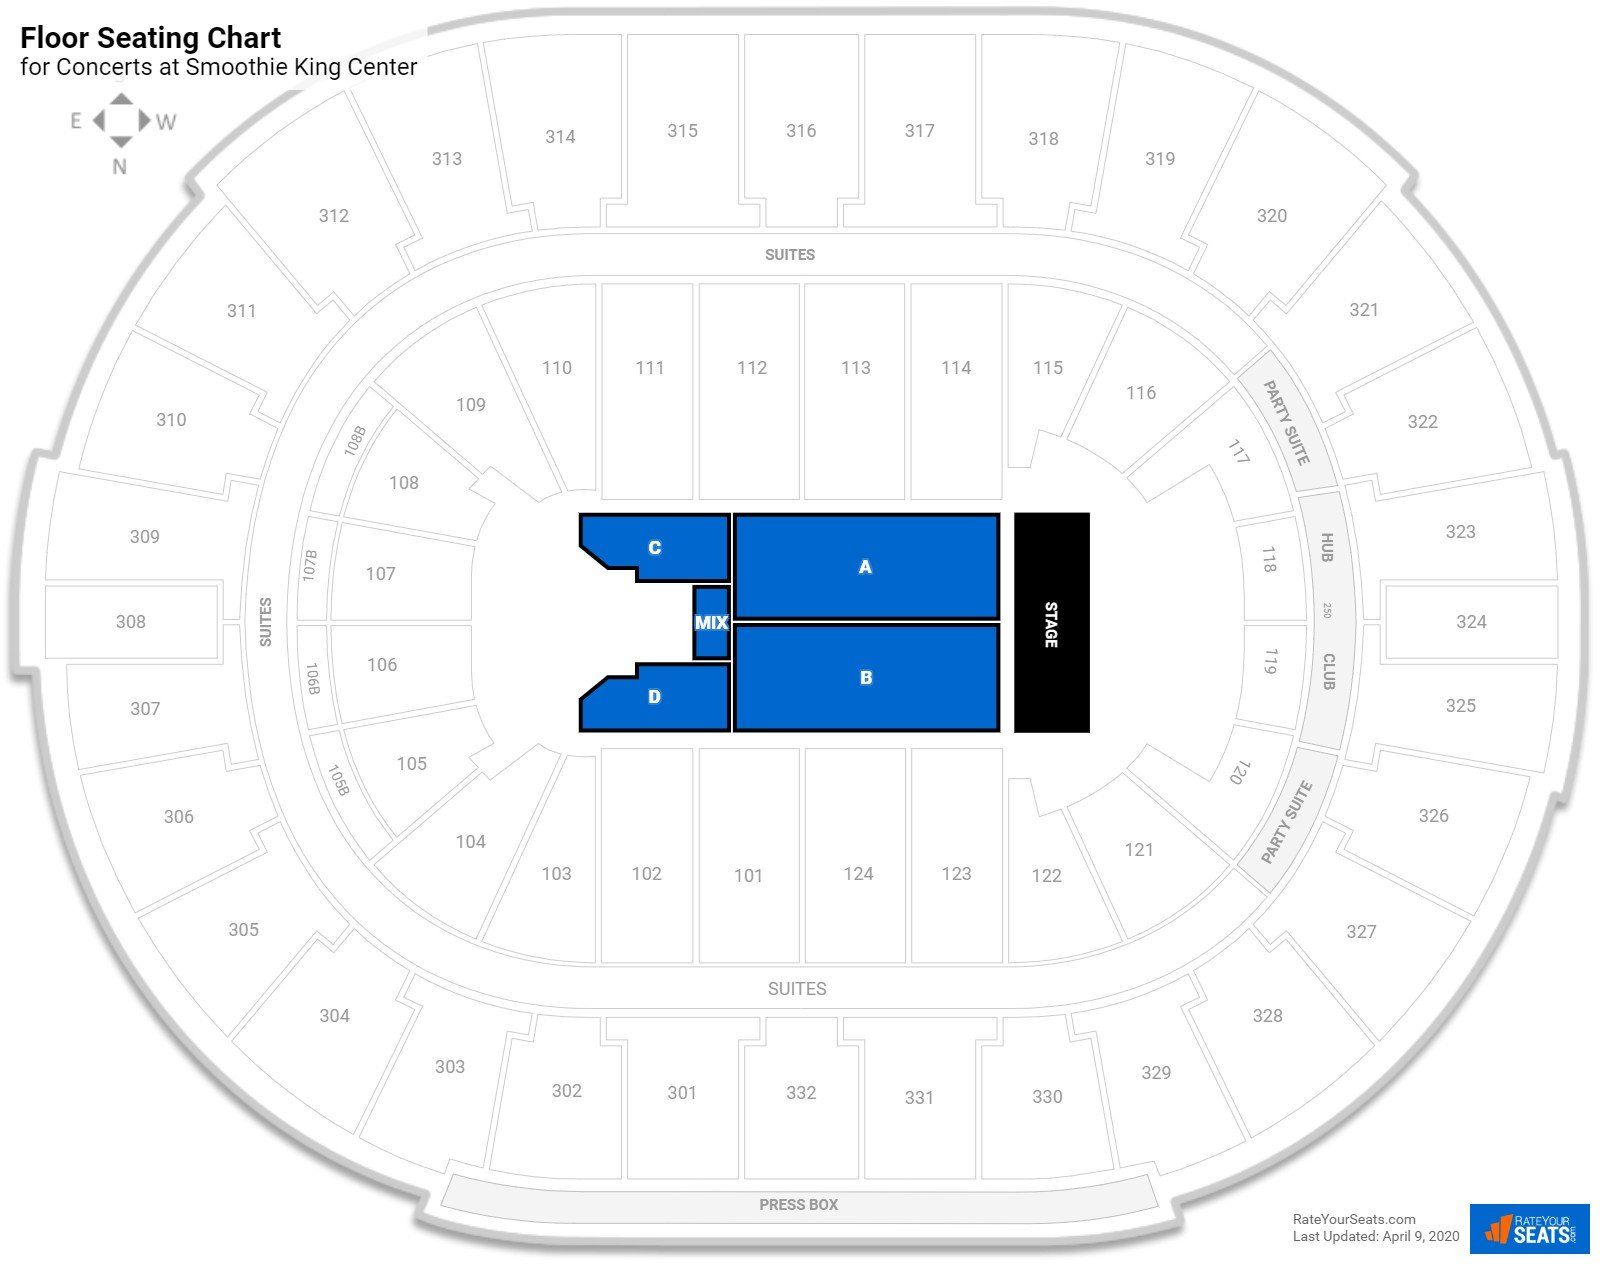 Smoothie King Center Floor Seating Chart